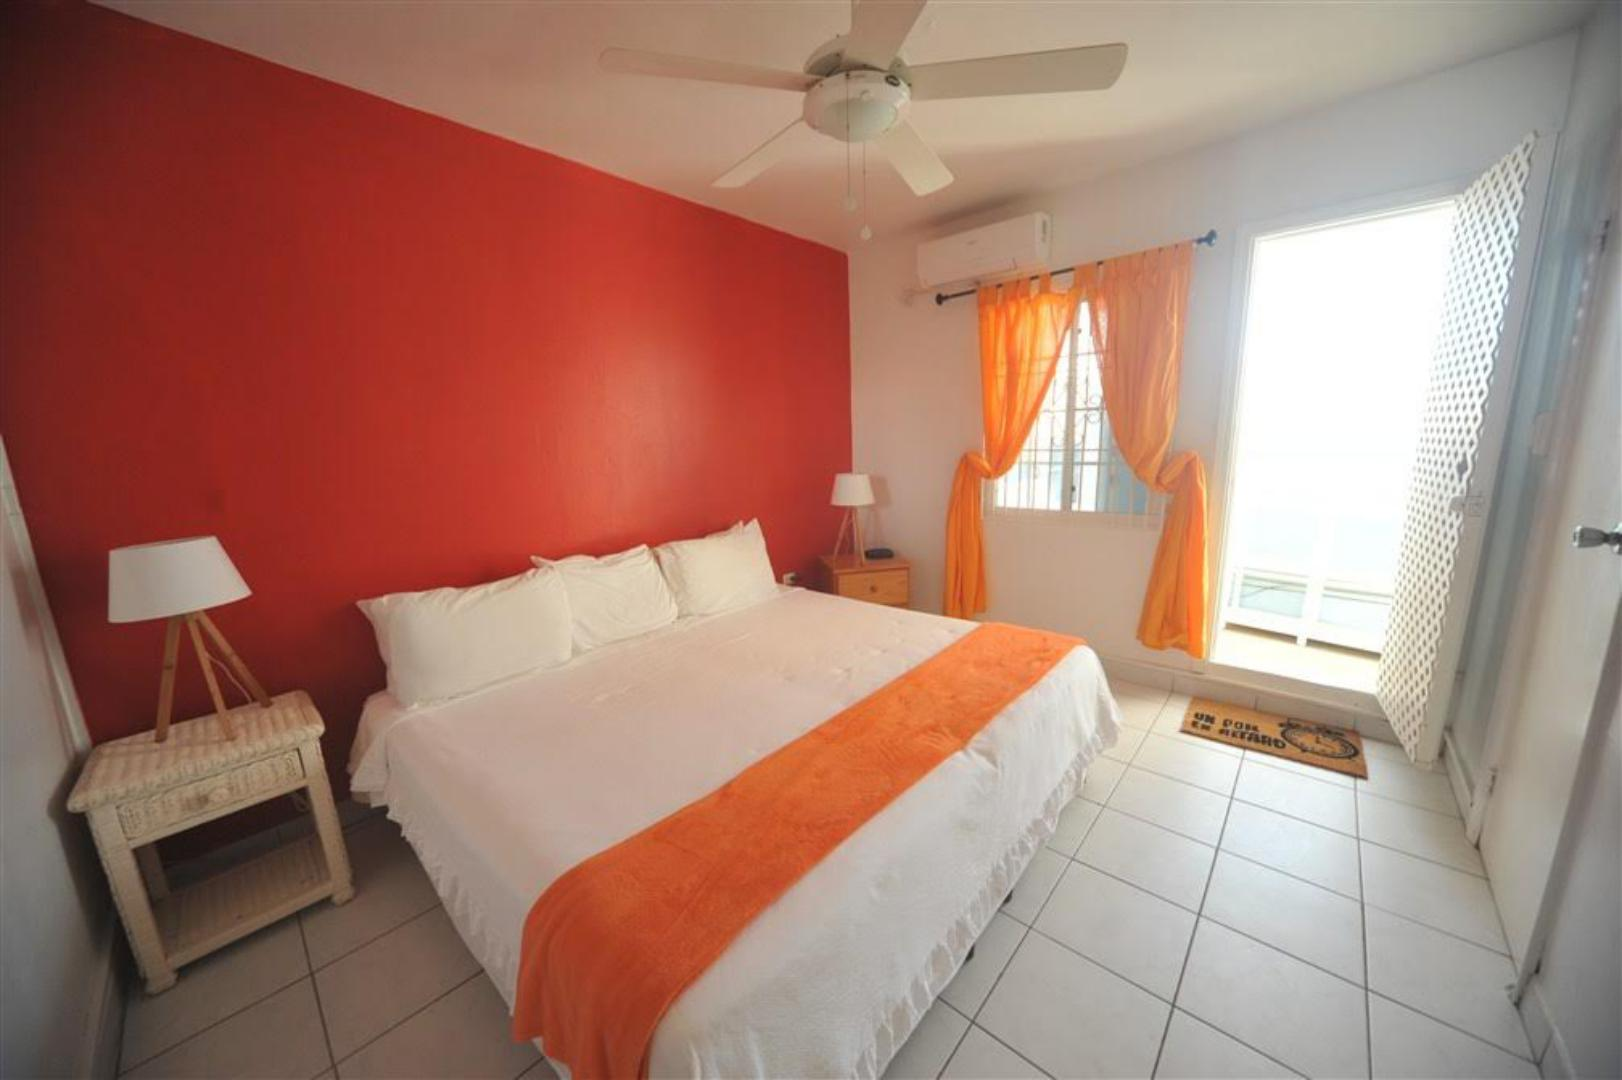 Beacon Hill - 1 bedroom -#607 - Simpson Bay Real Estate St ...